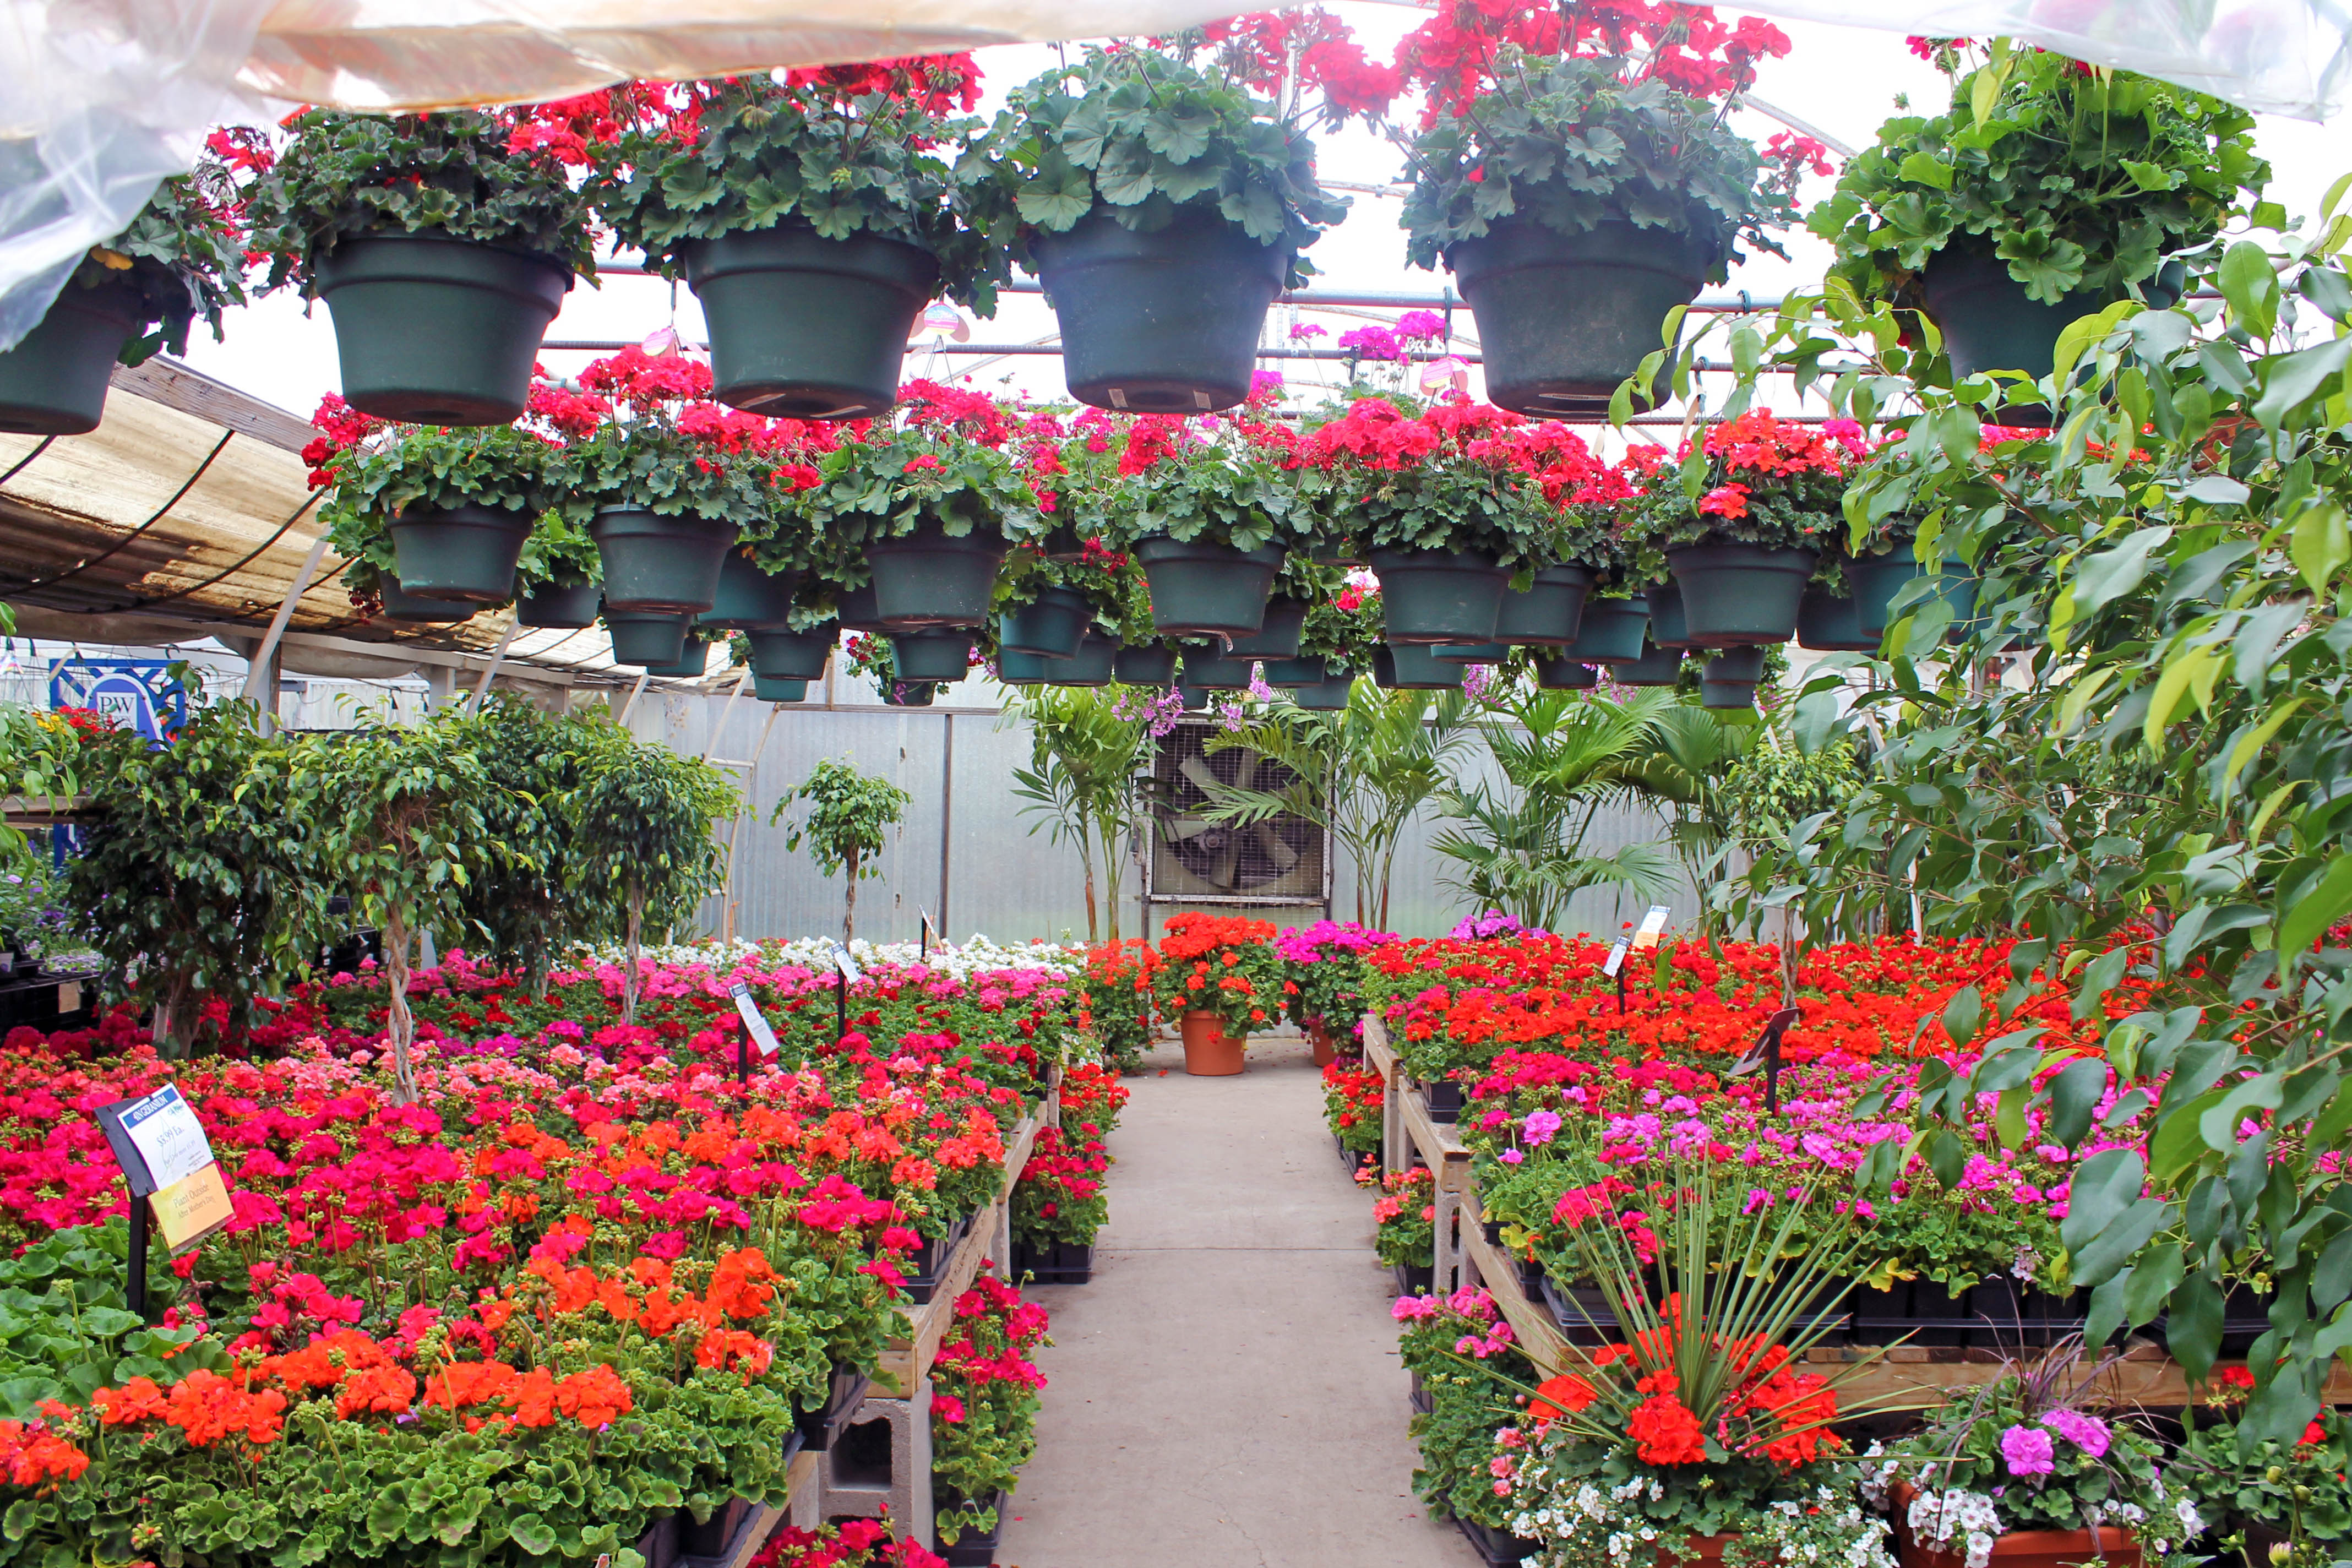 Merveilleux ... A Budding Or Expert Gardener Needs (and Wants) For Their Garden,  Landscape Or Nursery Within City Floral Garden Centeru0027s Diverse Garden  Store In Denver.